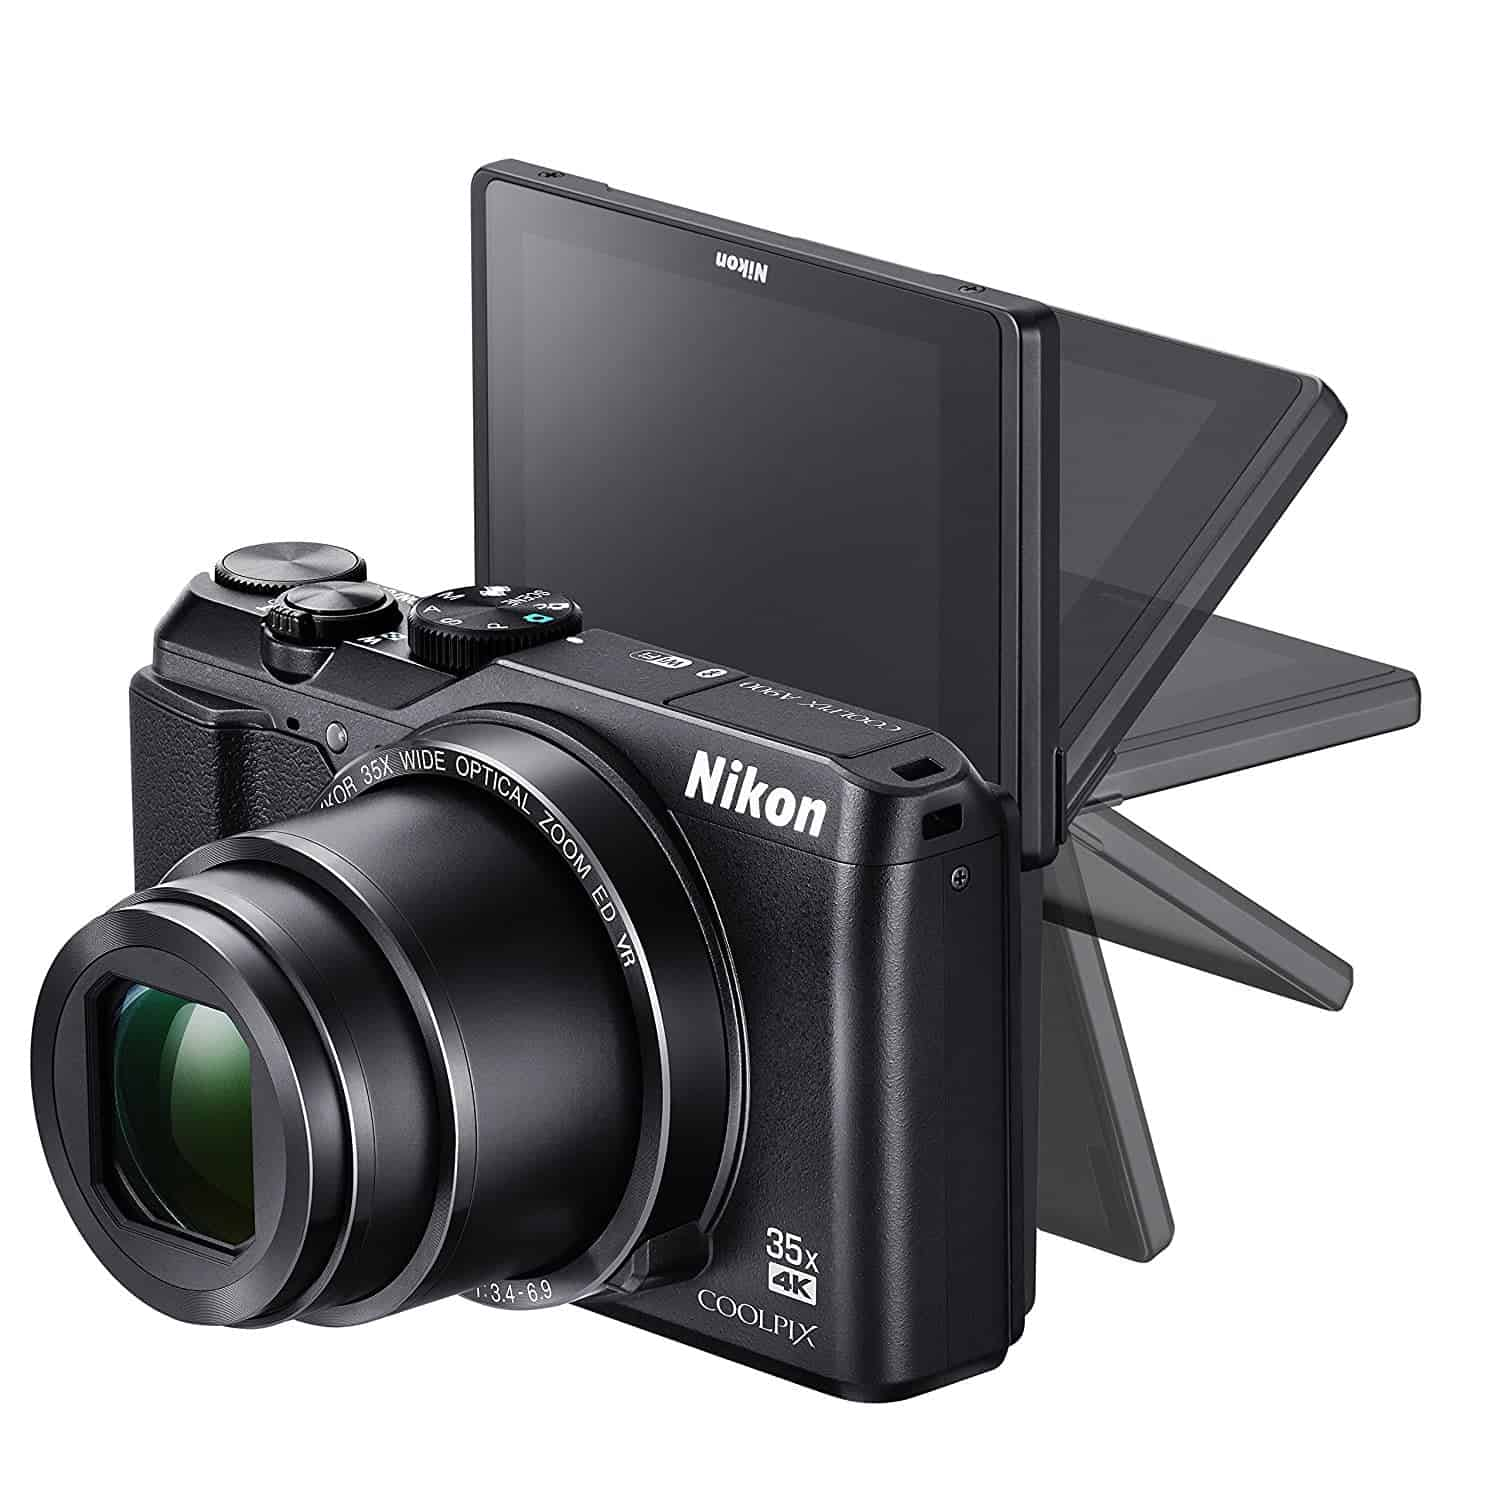 Nikon Coolpix A900 - 7 Best Cameras for Bloggers - Outofthe925.com